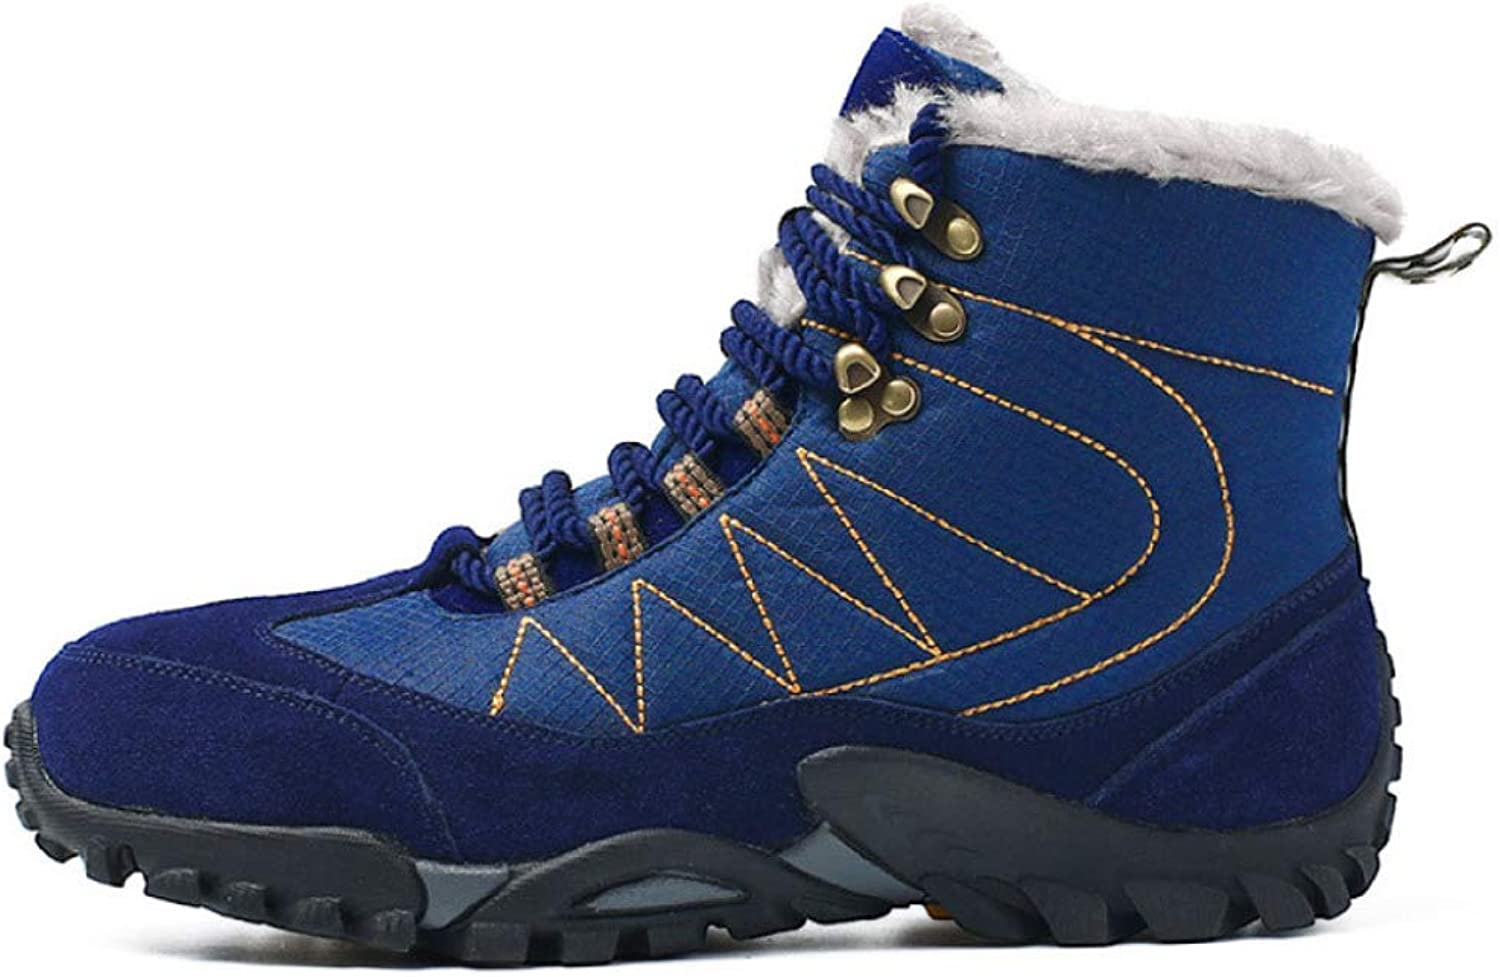 GAOYY Men Outdoor Sports Snow Boots Camping Hiking Work Combat Lace shoes Sneakers Up Breathable High Top Desert Booties Large Size:5-11.5